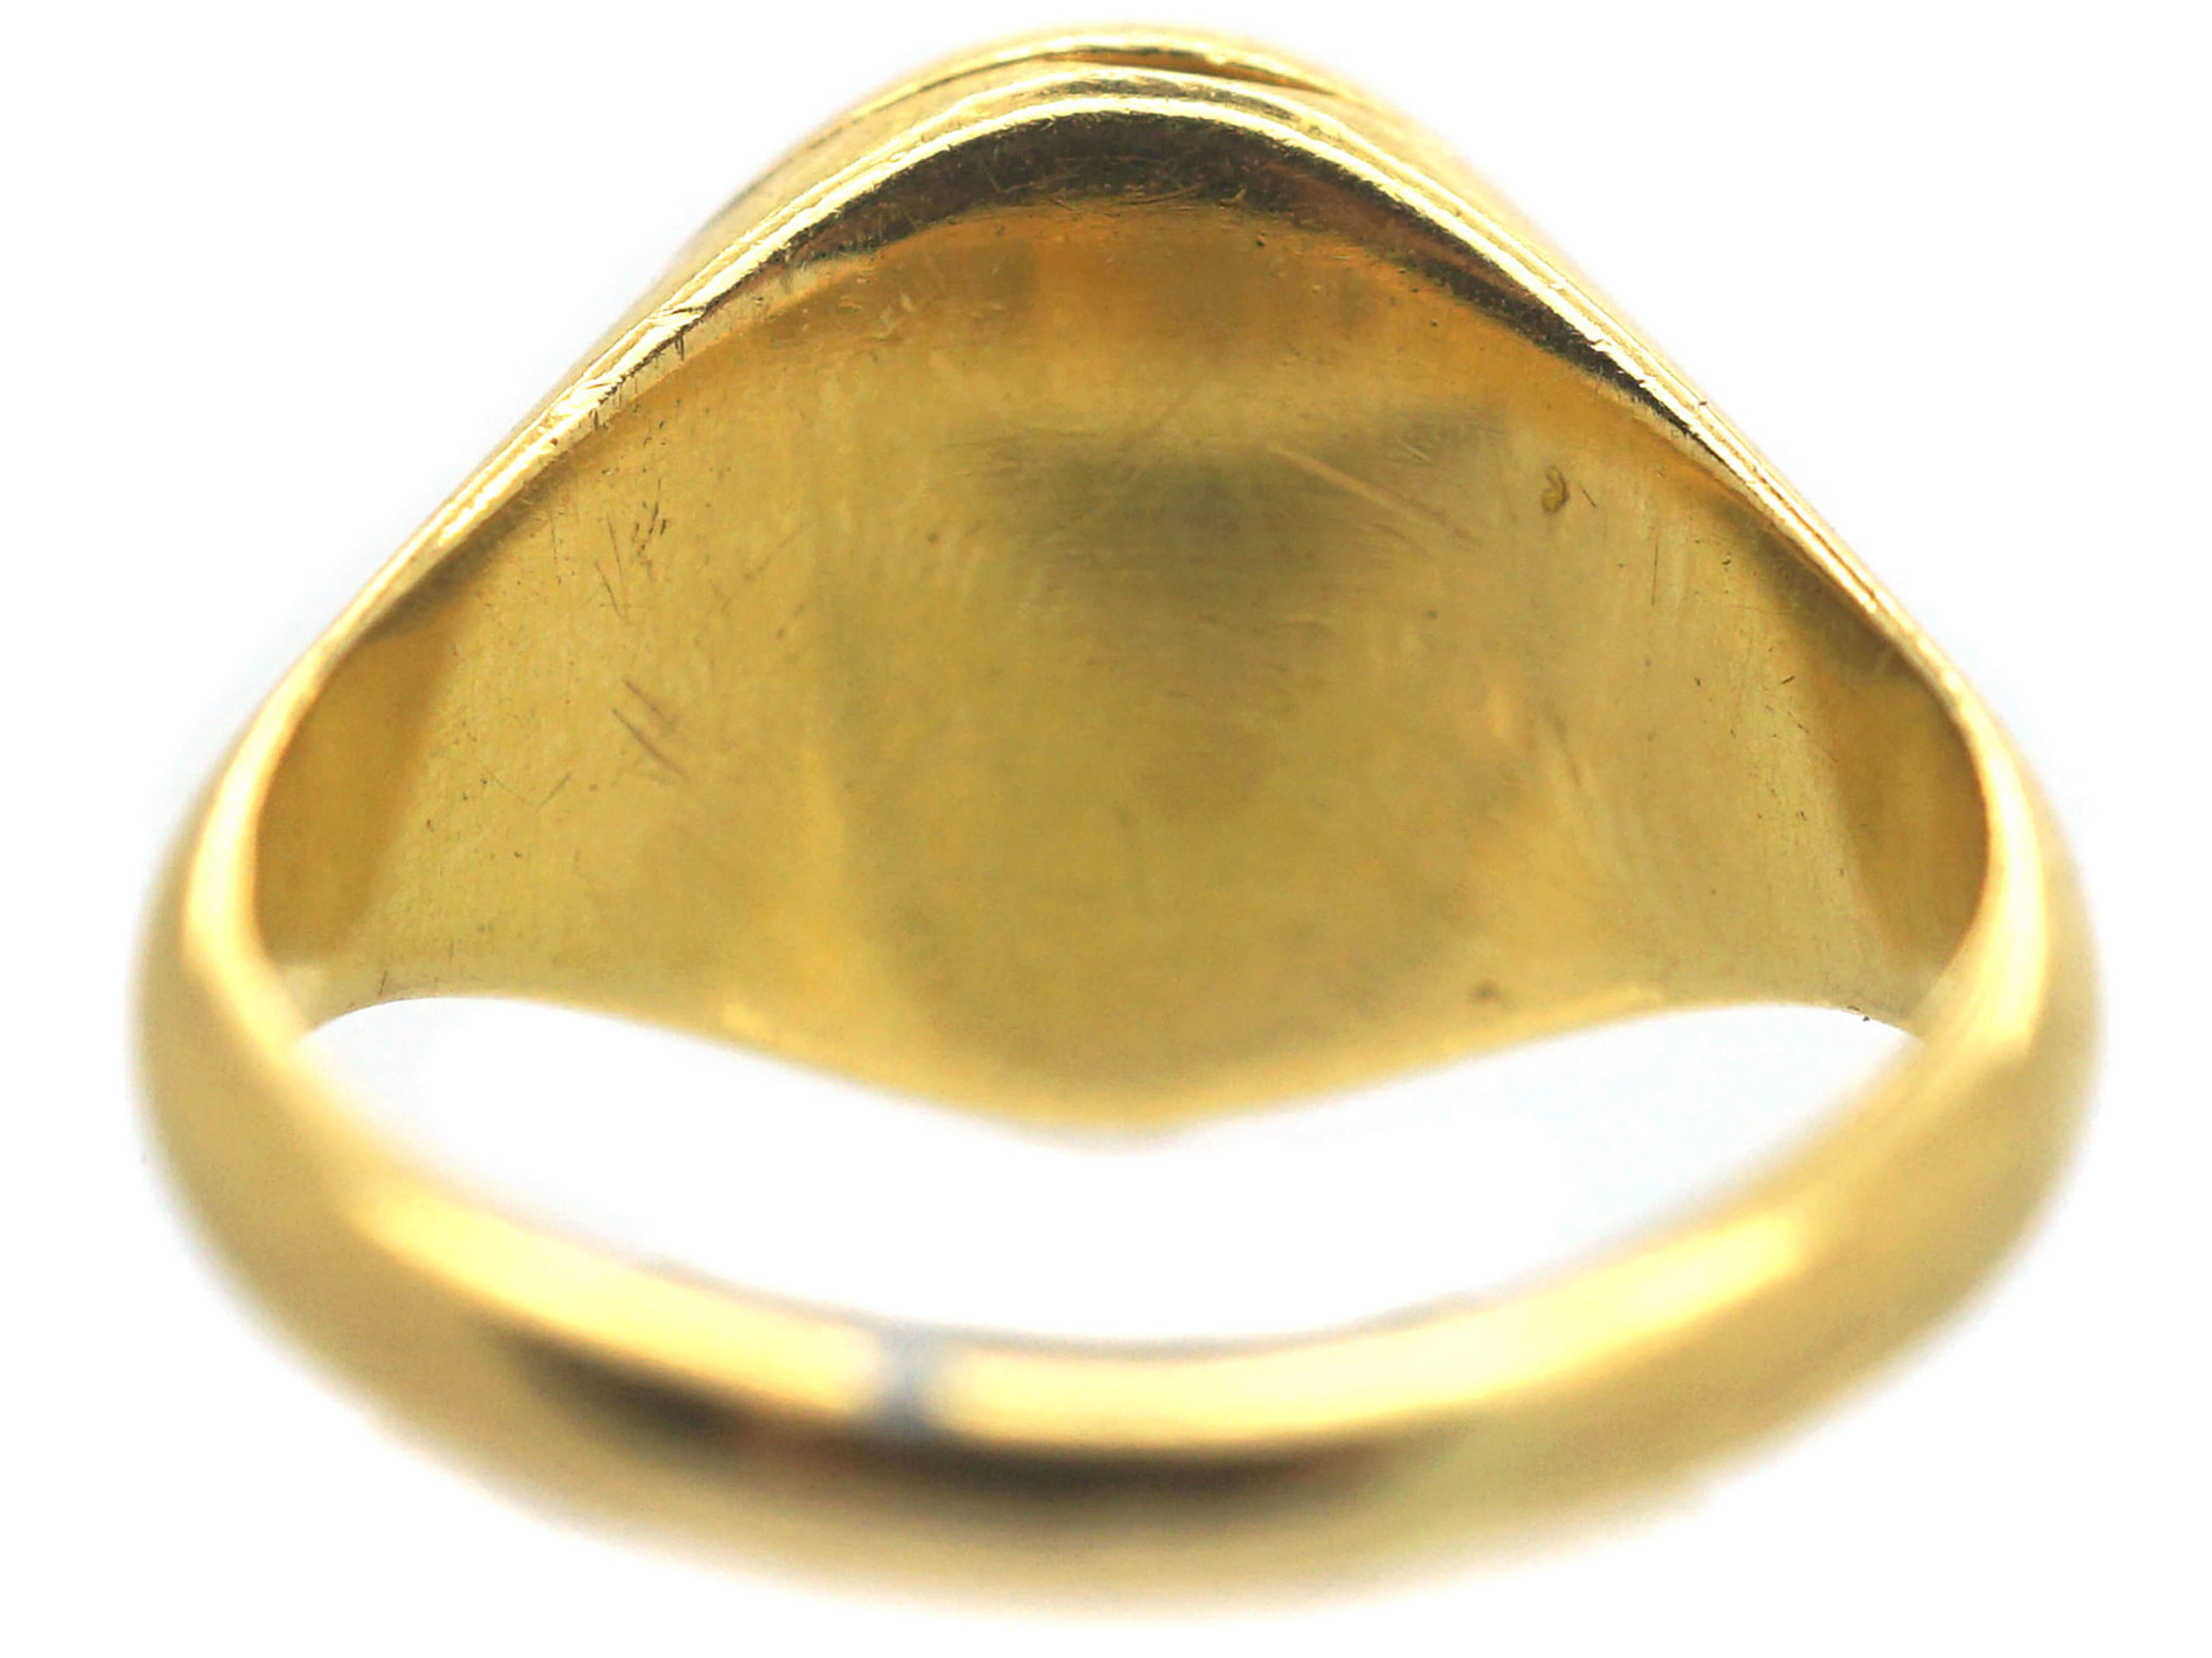 Victorian 18ct Gold Opening Ring with Locket Compartment